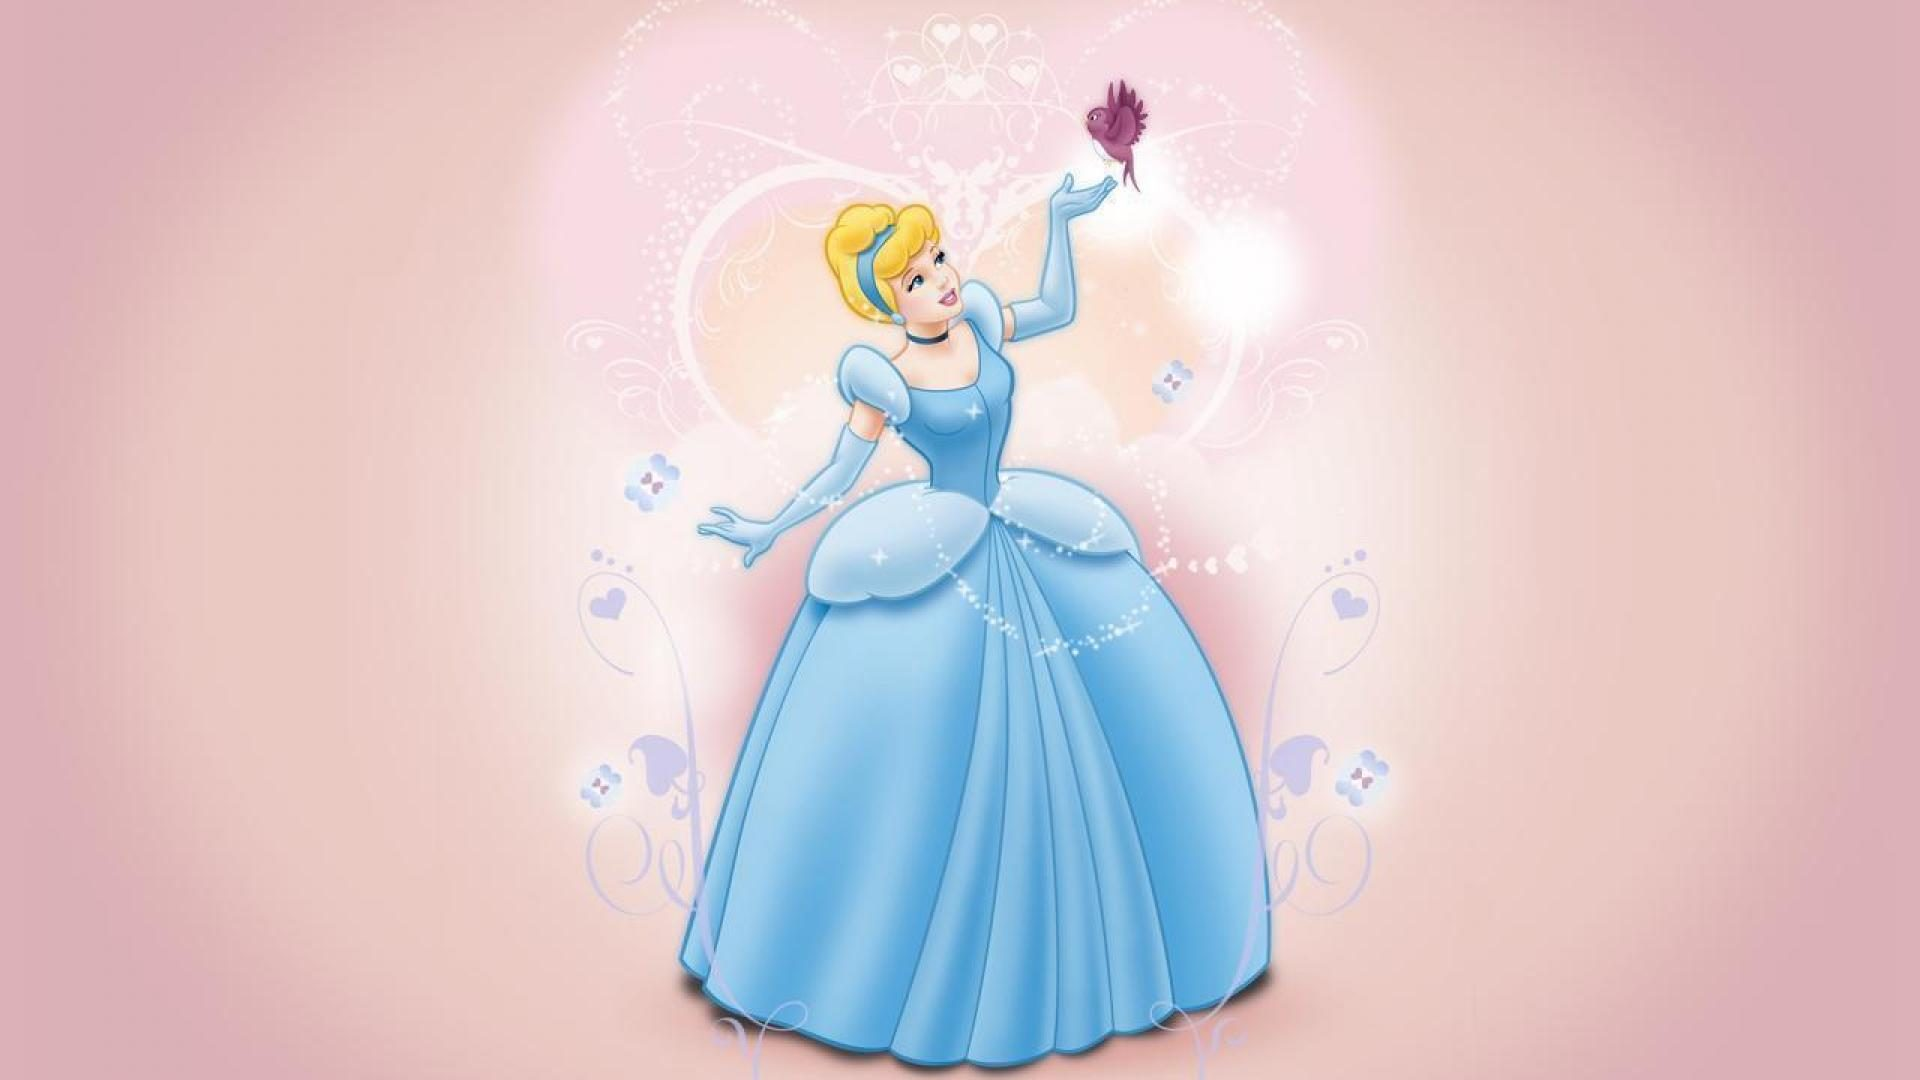 Cute Dolls Wallpapers With Quotes Disney Princess 1920 215 1080 Hd Wallpapers Hd Backgrounds